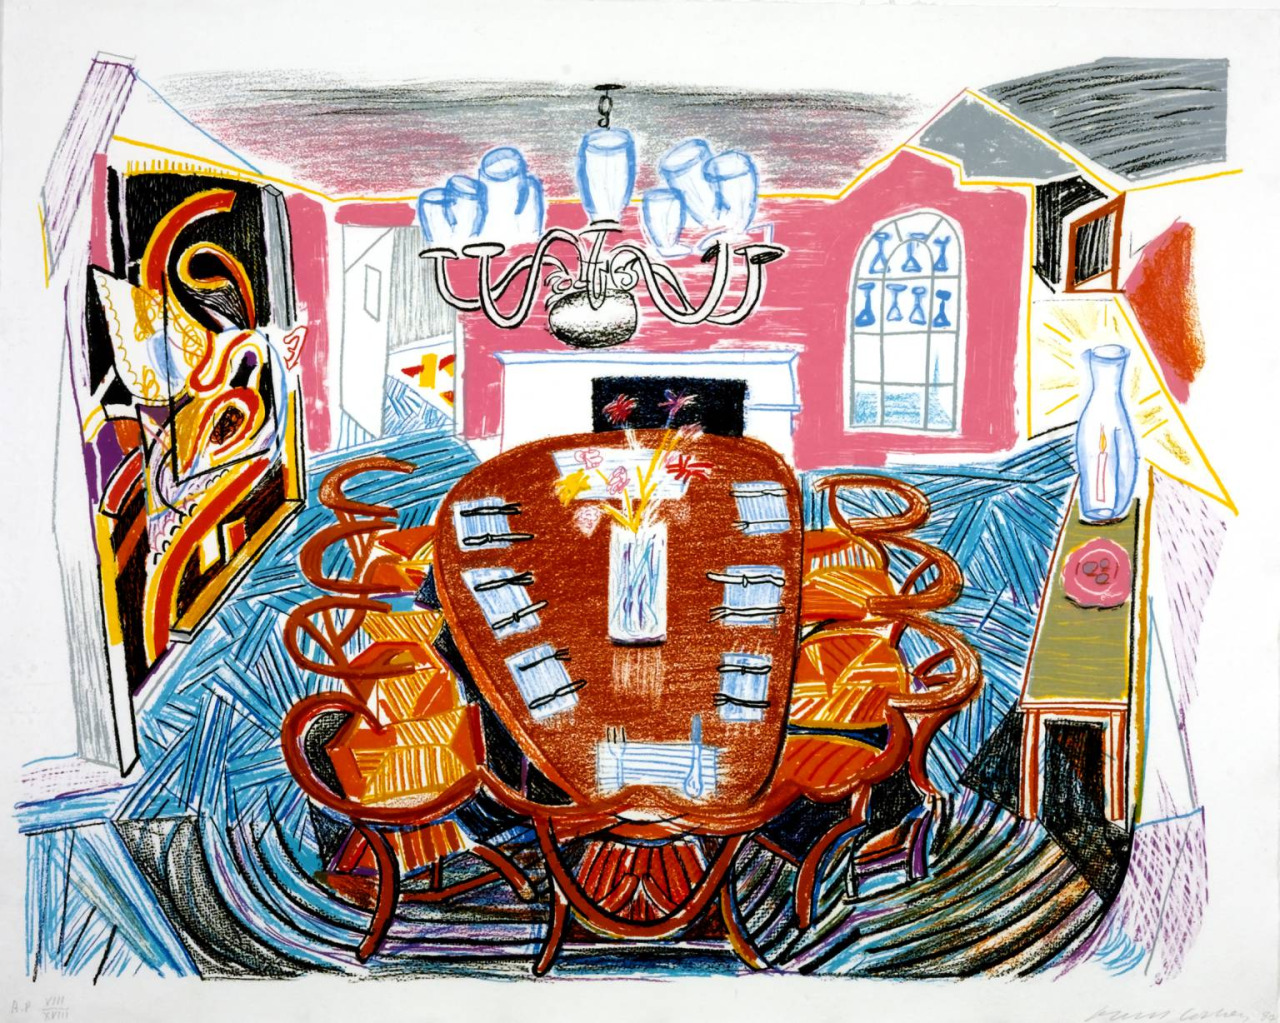 transistoradio :     David Hockney (b.1937),  Tyler Dining Room  (1984), lithograph on paper, 95 x 73 cm. Collection of Tate, UK. Via  Tate .